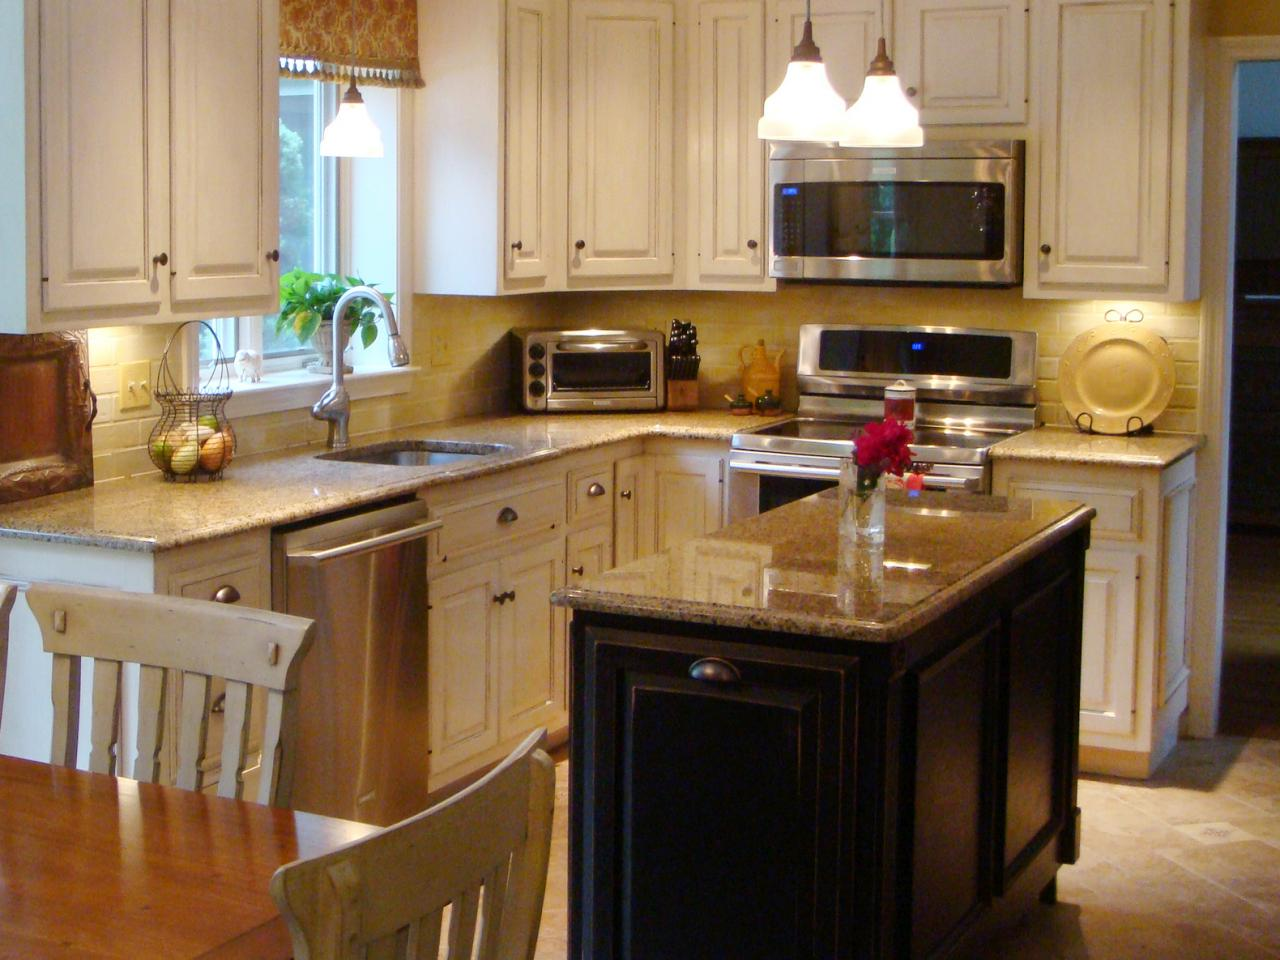 Small Kitchen Design Ideas With Island - The New Kitchen ...